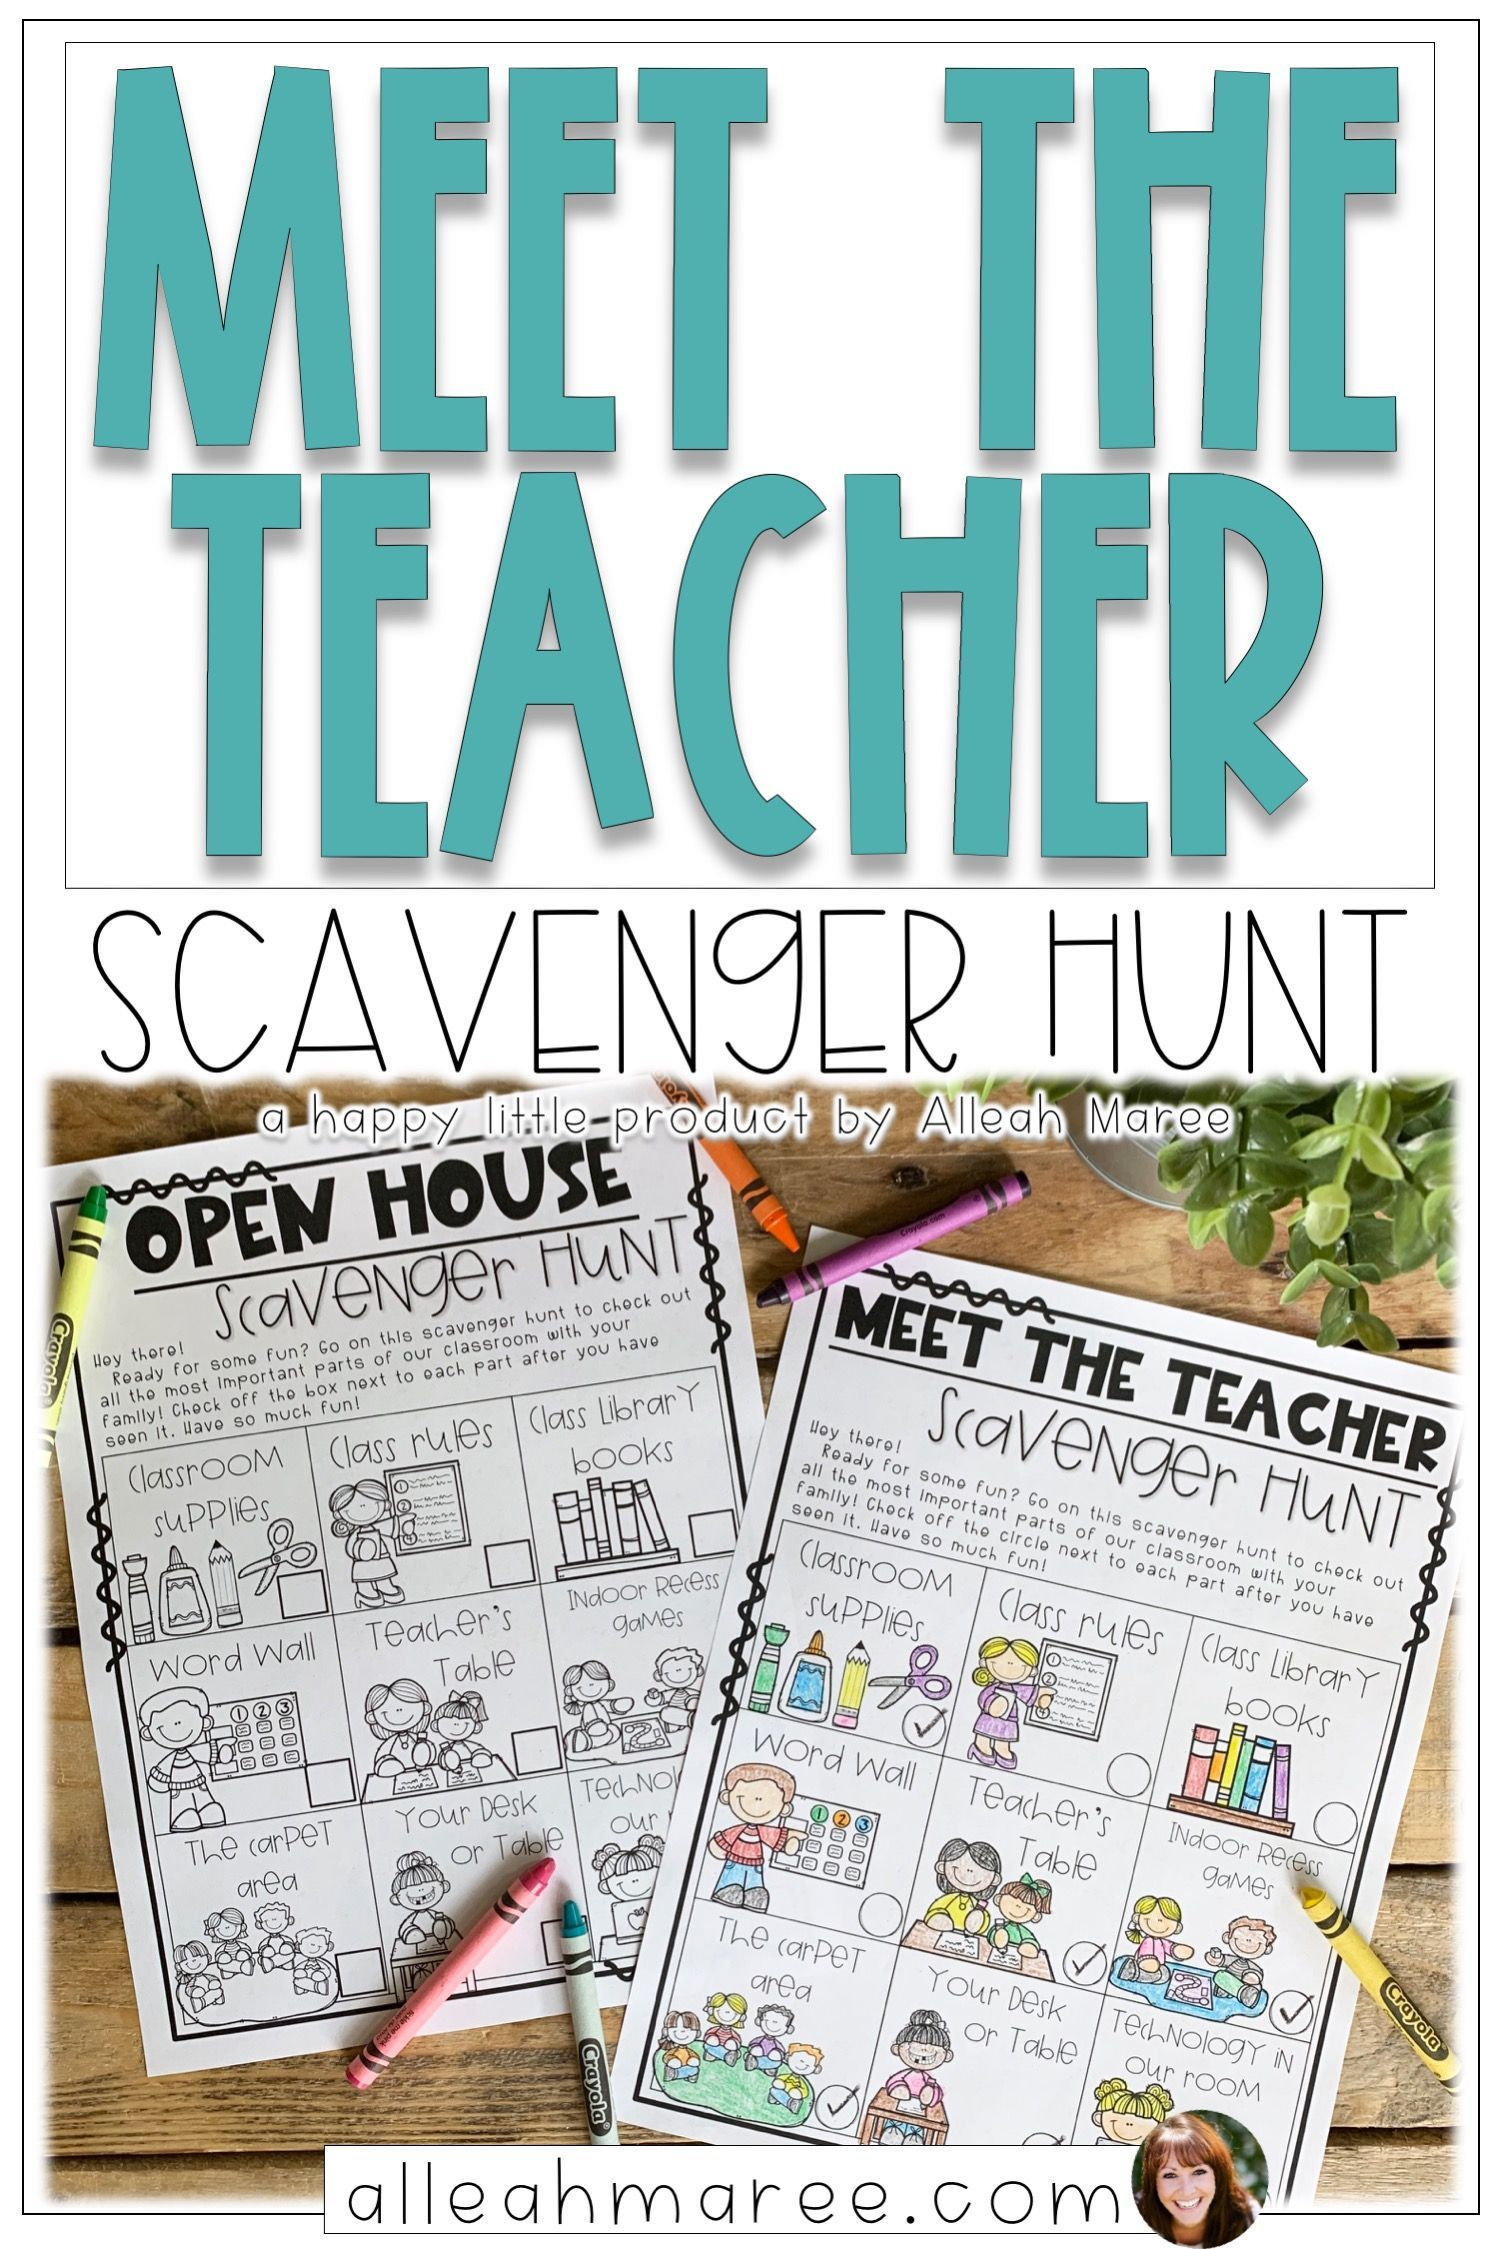 Meet the Teacher Night & Open House Scavenger Hunt Editable is part of Elementary classroom - or clipart to create your own   There are two border designs included with the editable scavenger hunts, as well as a blank ta